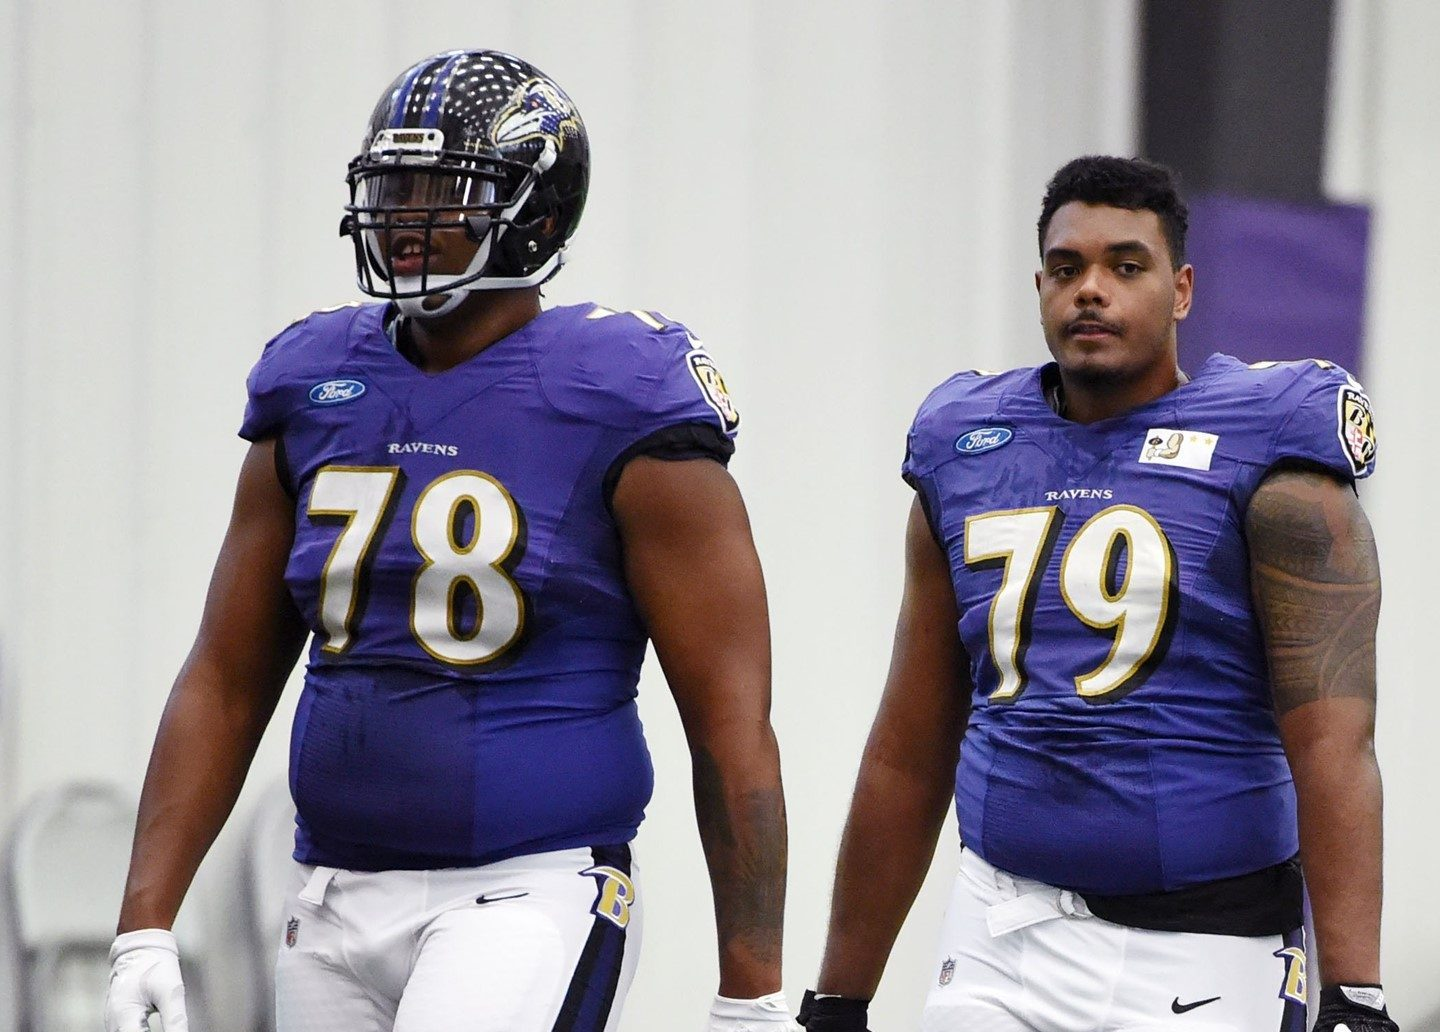 Photo of Orlando Brown Jr. and Ronnie Stanley together